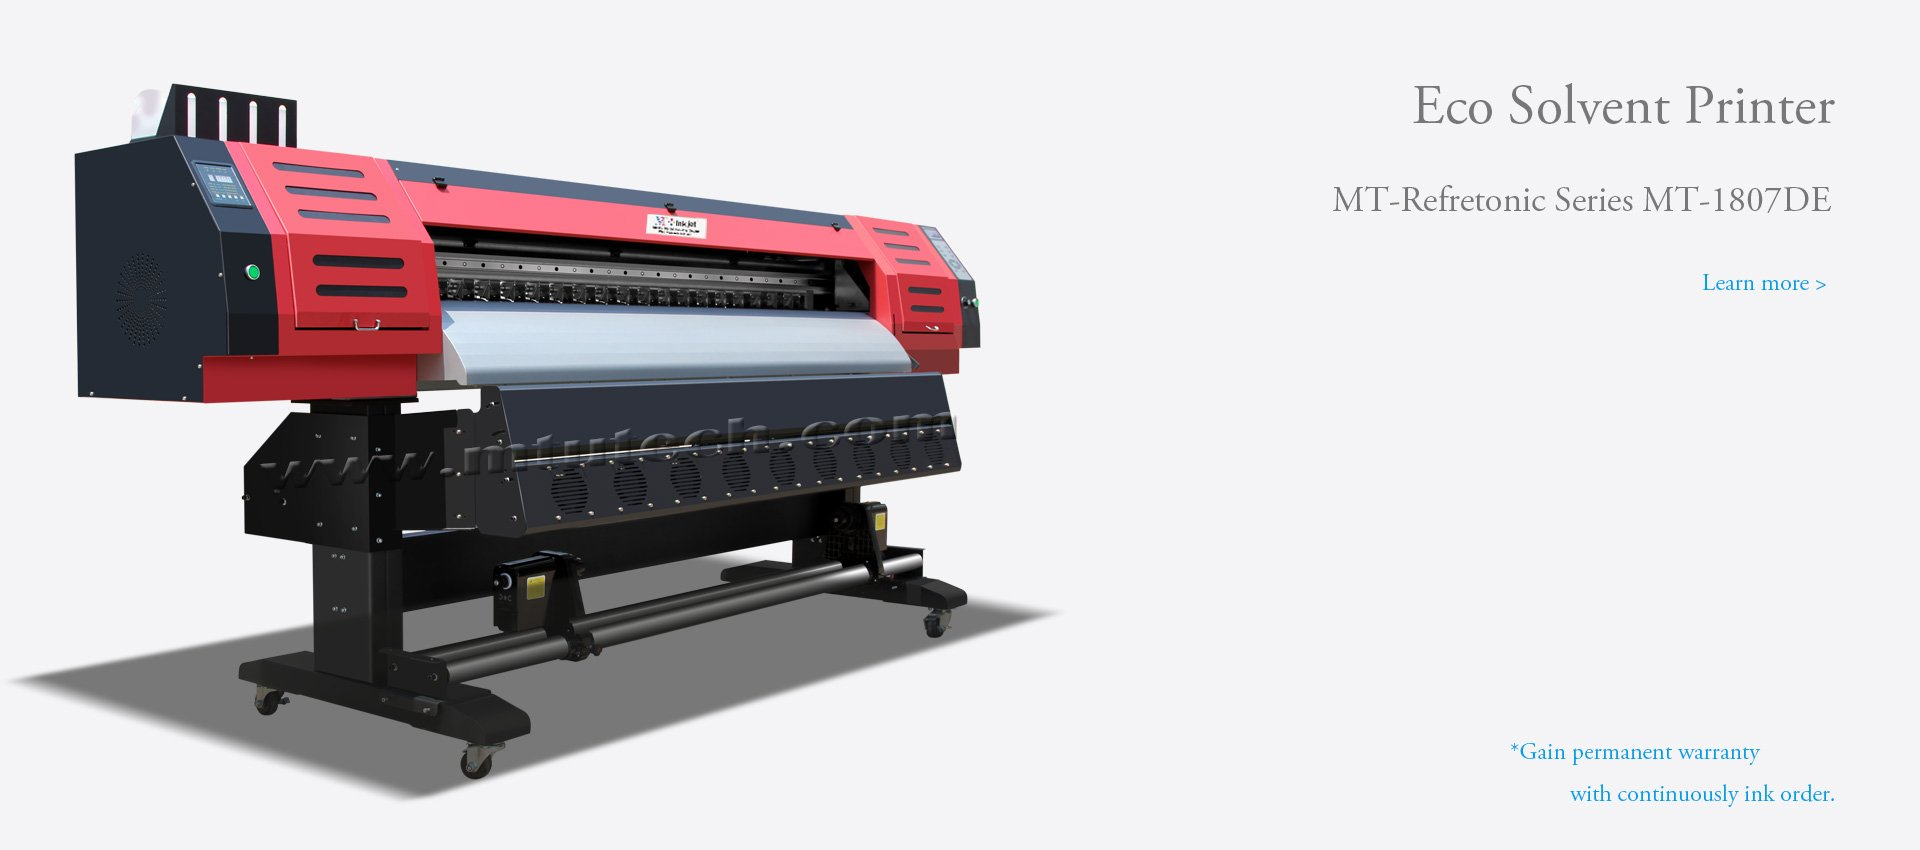 Eco solvent printer digital textile printer supplier uv eco solvent printer digital textile printer supplier uv printer manufacturer malvernweather Image collections